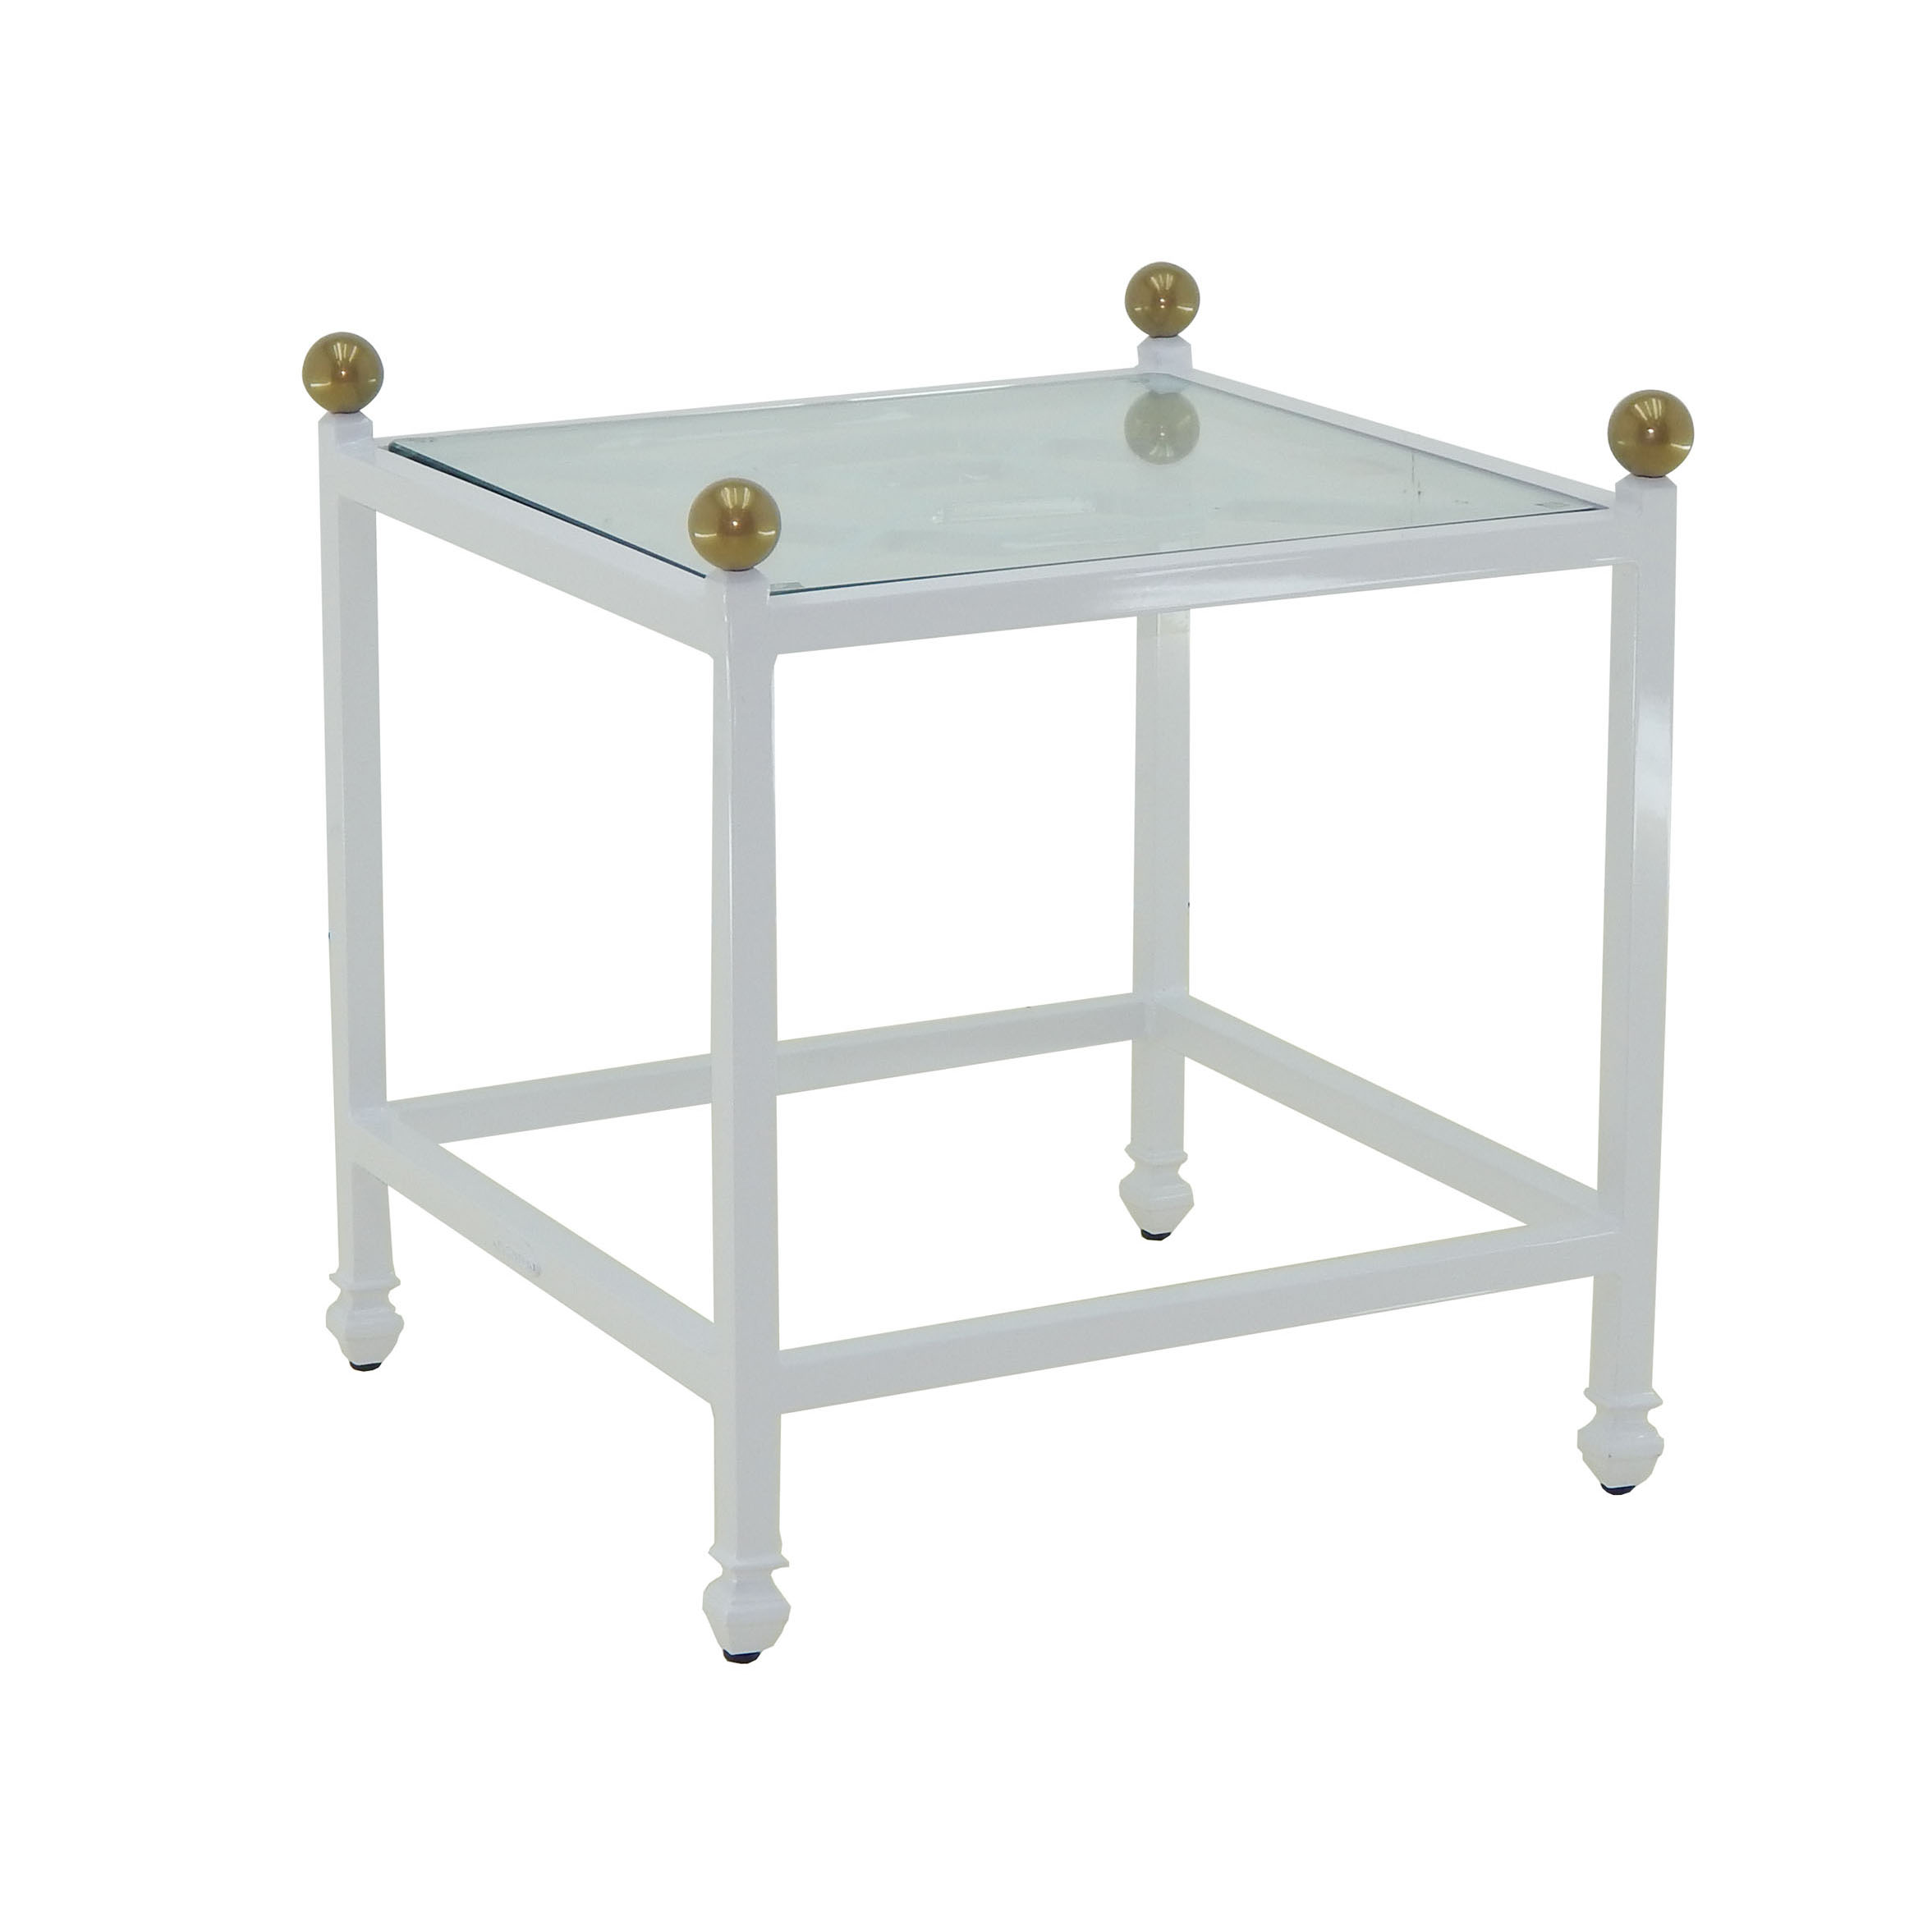 signature square side table castelle barclaybutera sidetable fretwork accent blue grey geometric rug dale tiffany glass wall art small butler cylinder end driftwood diy chest